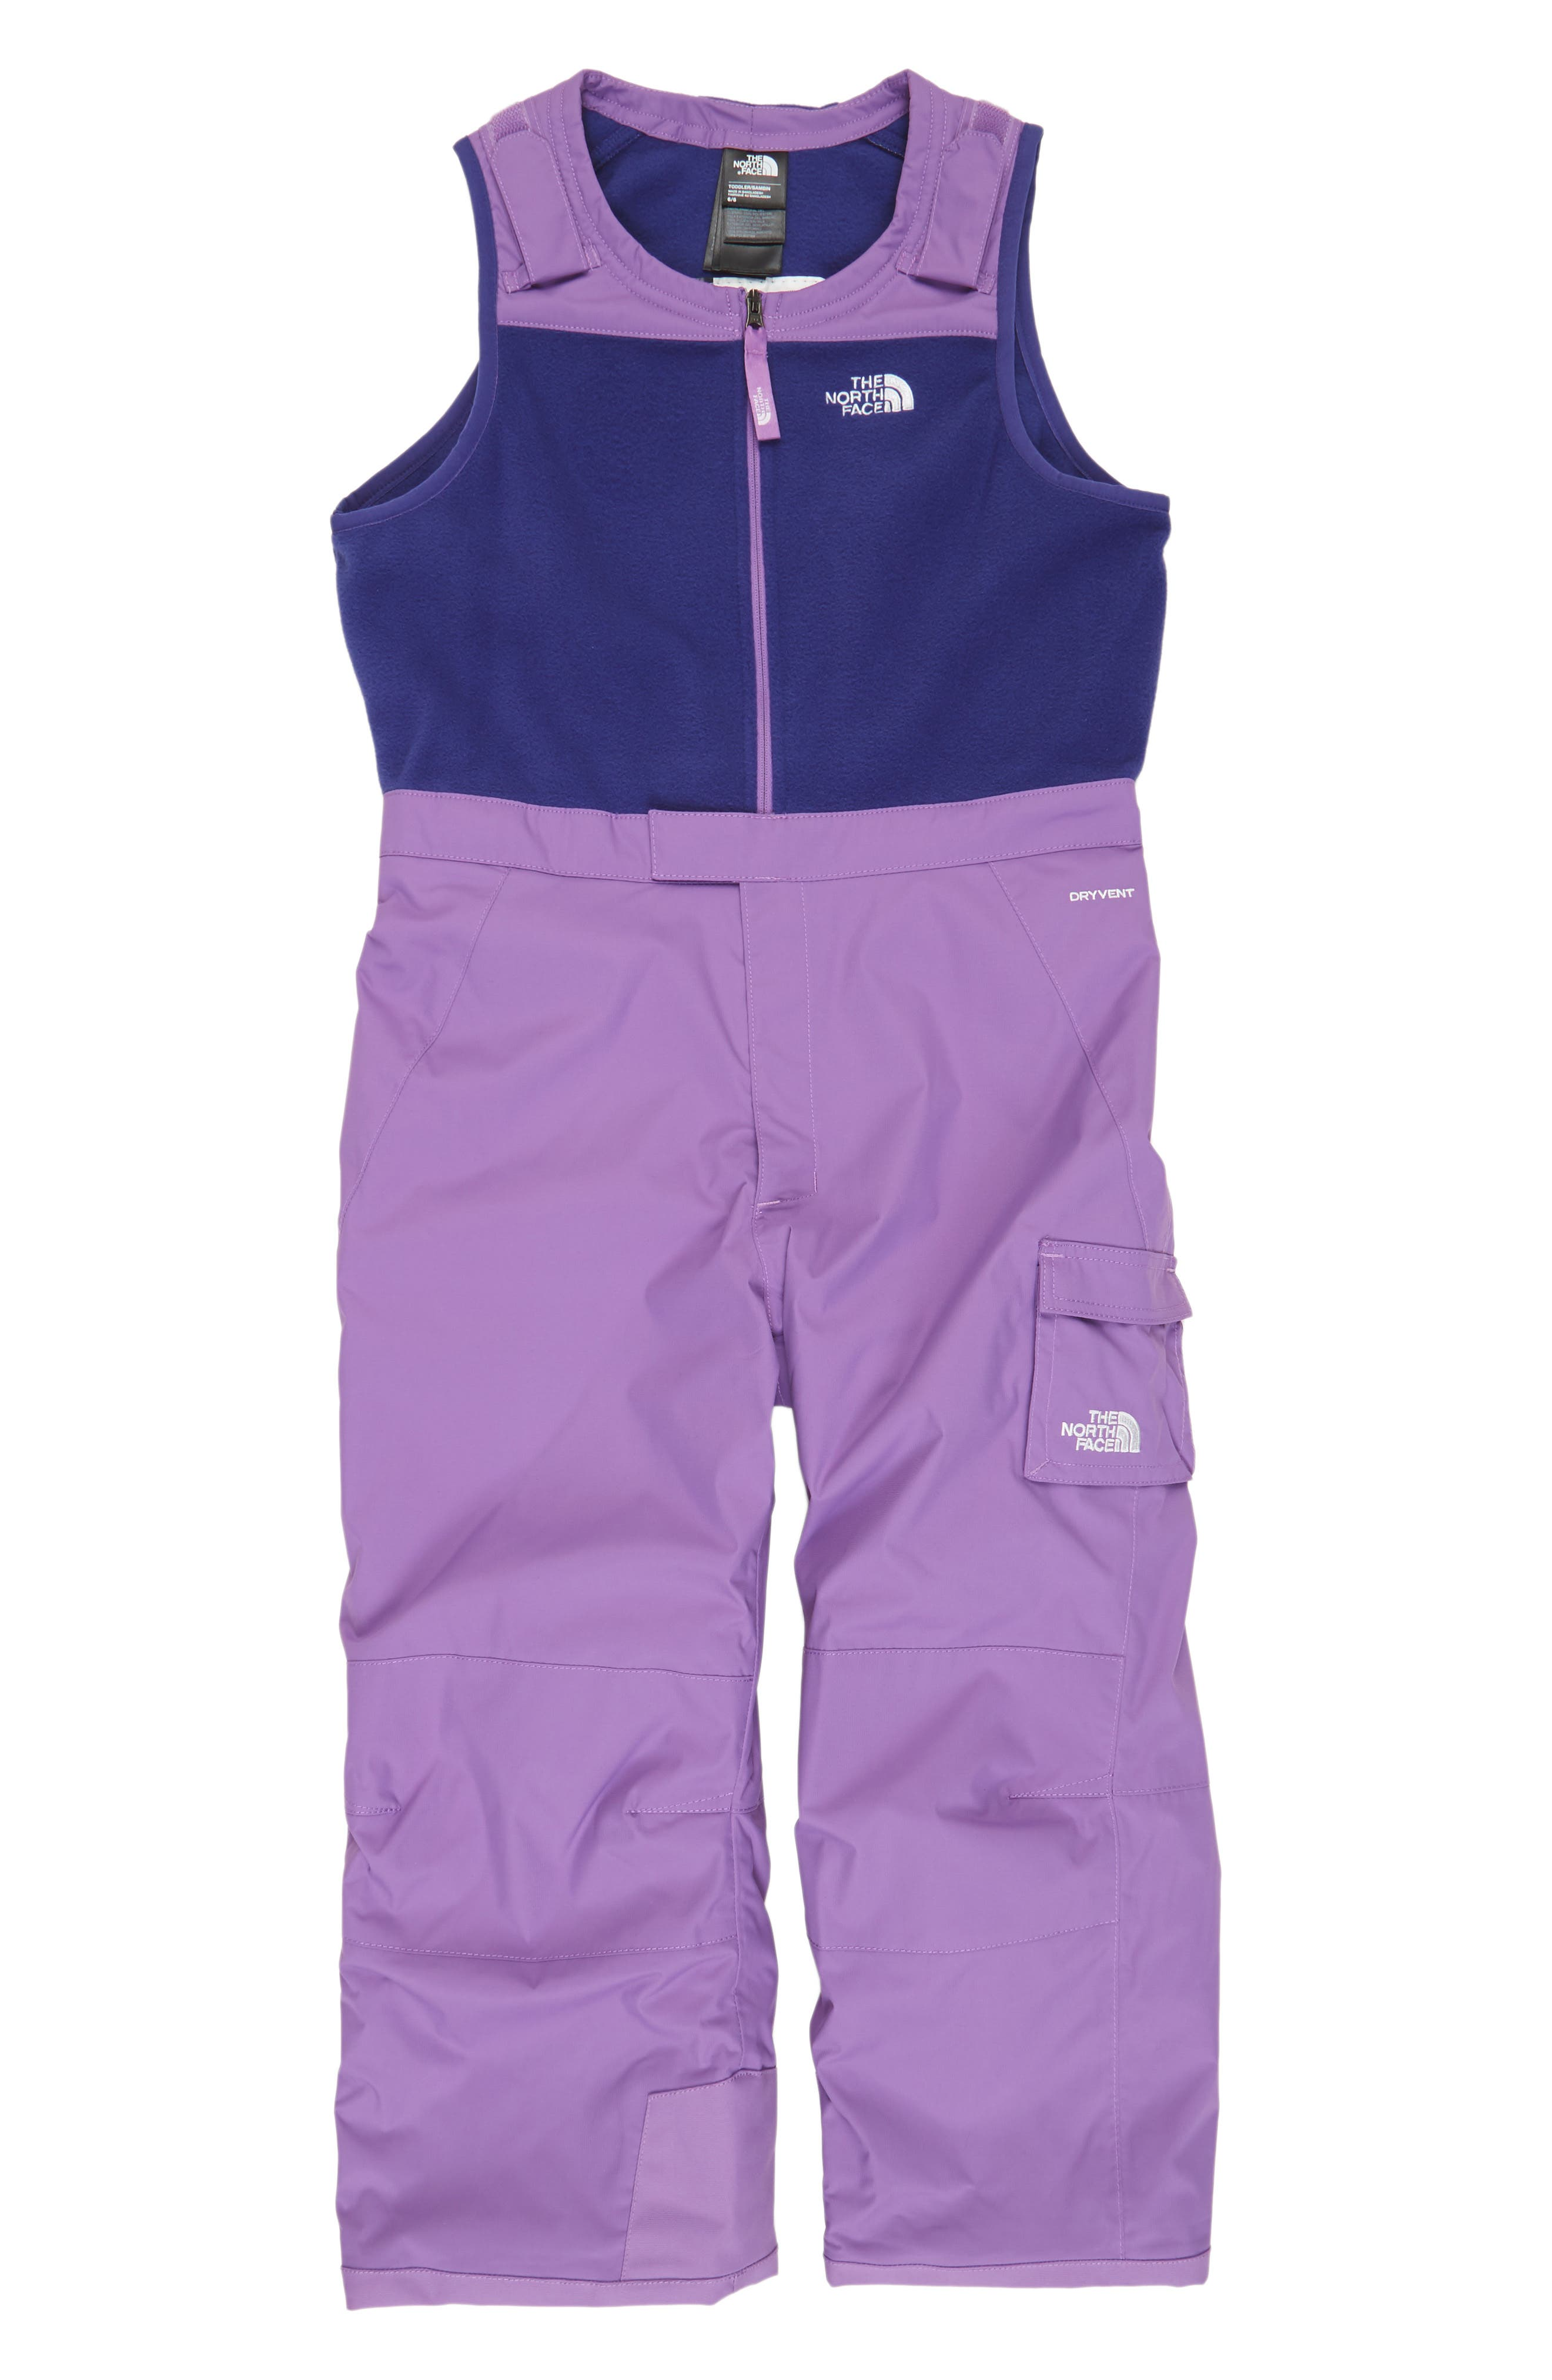 Heatseeker<sup>™</sup> Insulated Waterproof Bib Snowsuit,                             Main thumbnail 1, color,                             510